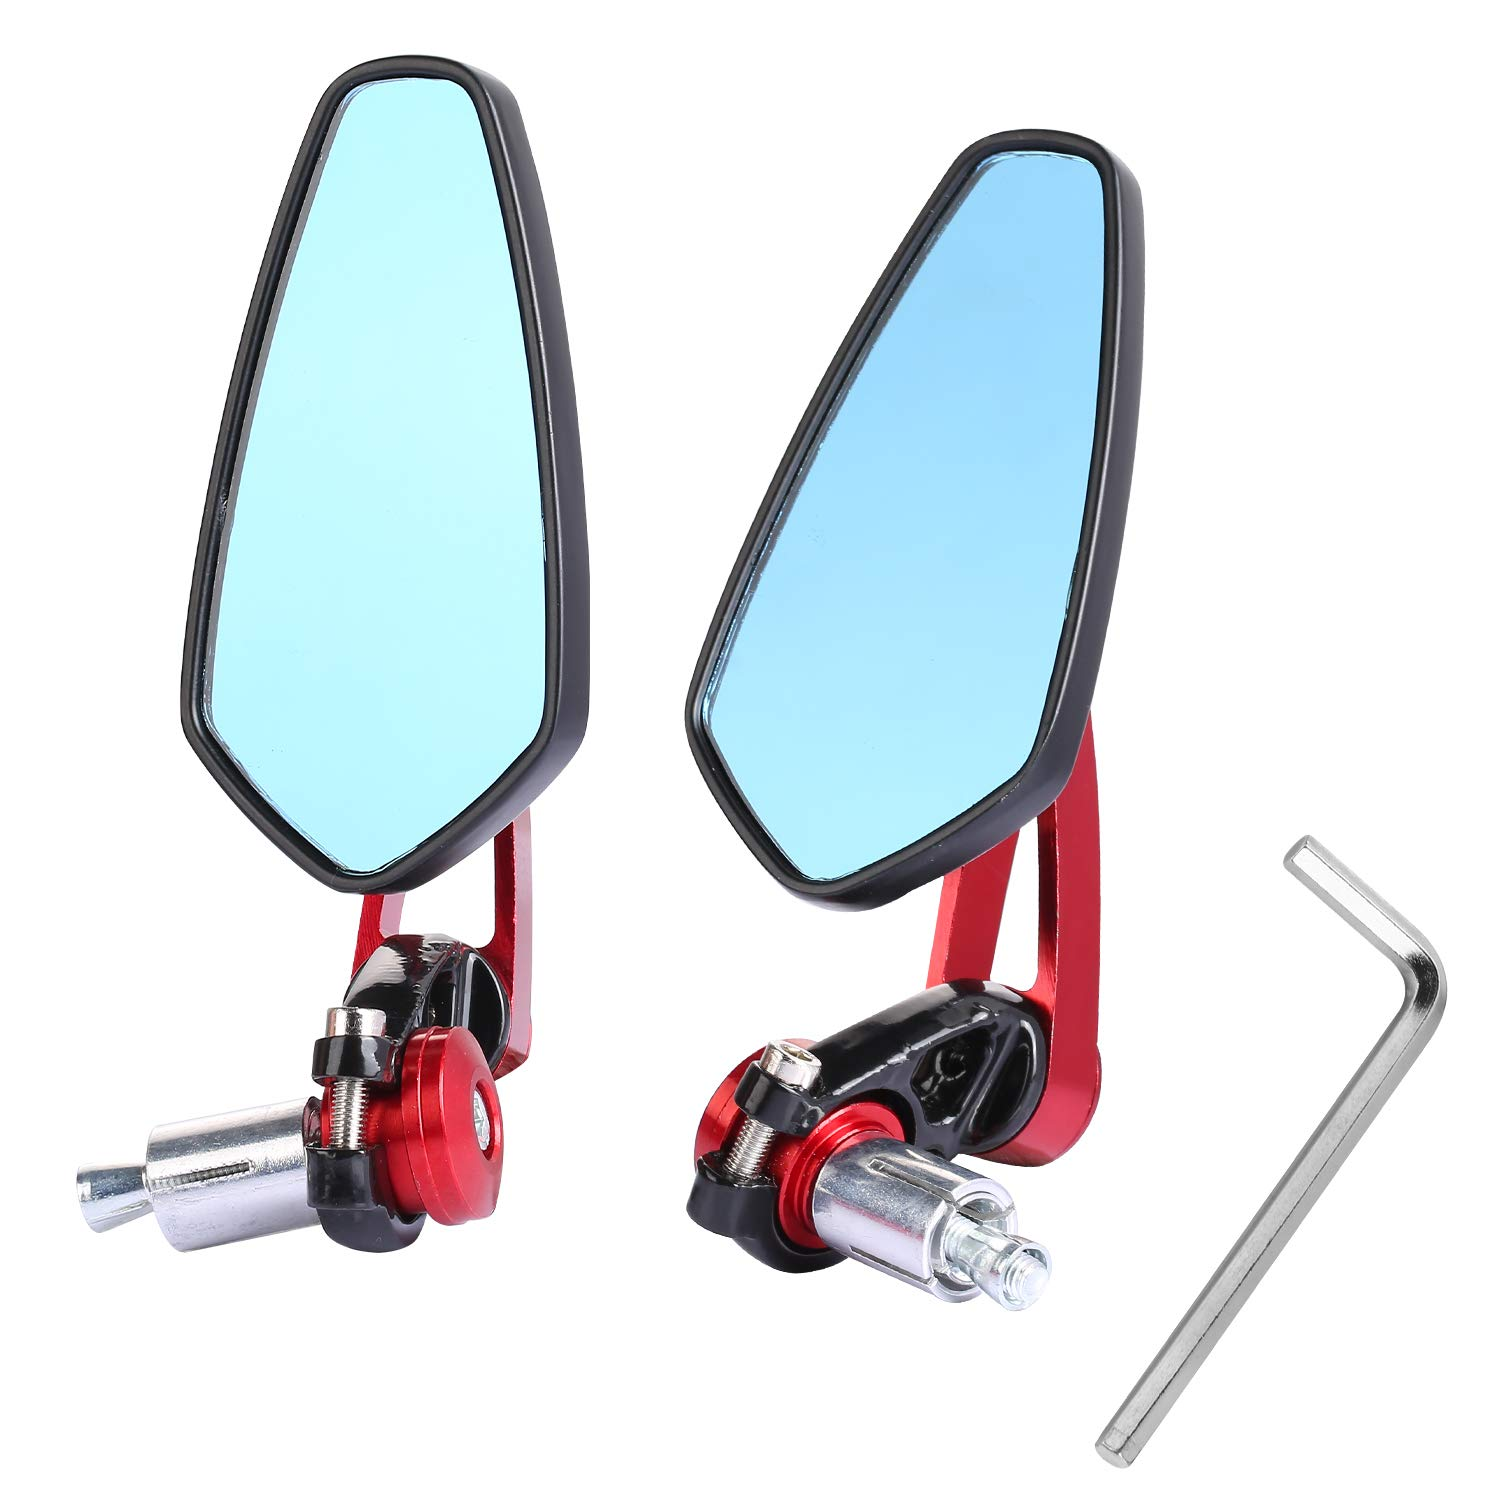 "Yizhet Universal Motorcycle Bar End Mirrors Rear View Handlebar CNC 7/8"" 22mm Aluminum Alloy Side Mirrors Handlebar End Mirrors - 1 Pair, Black (1 Pair Red)"